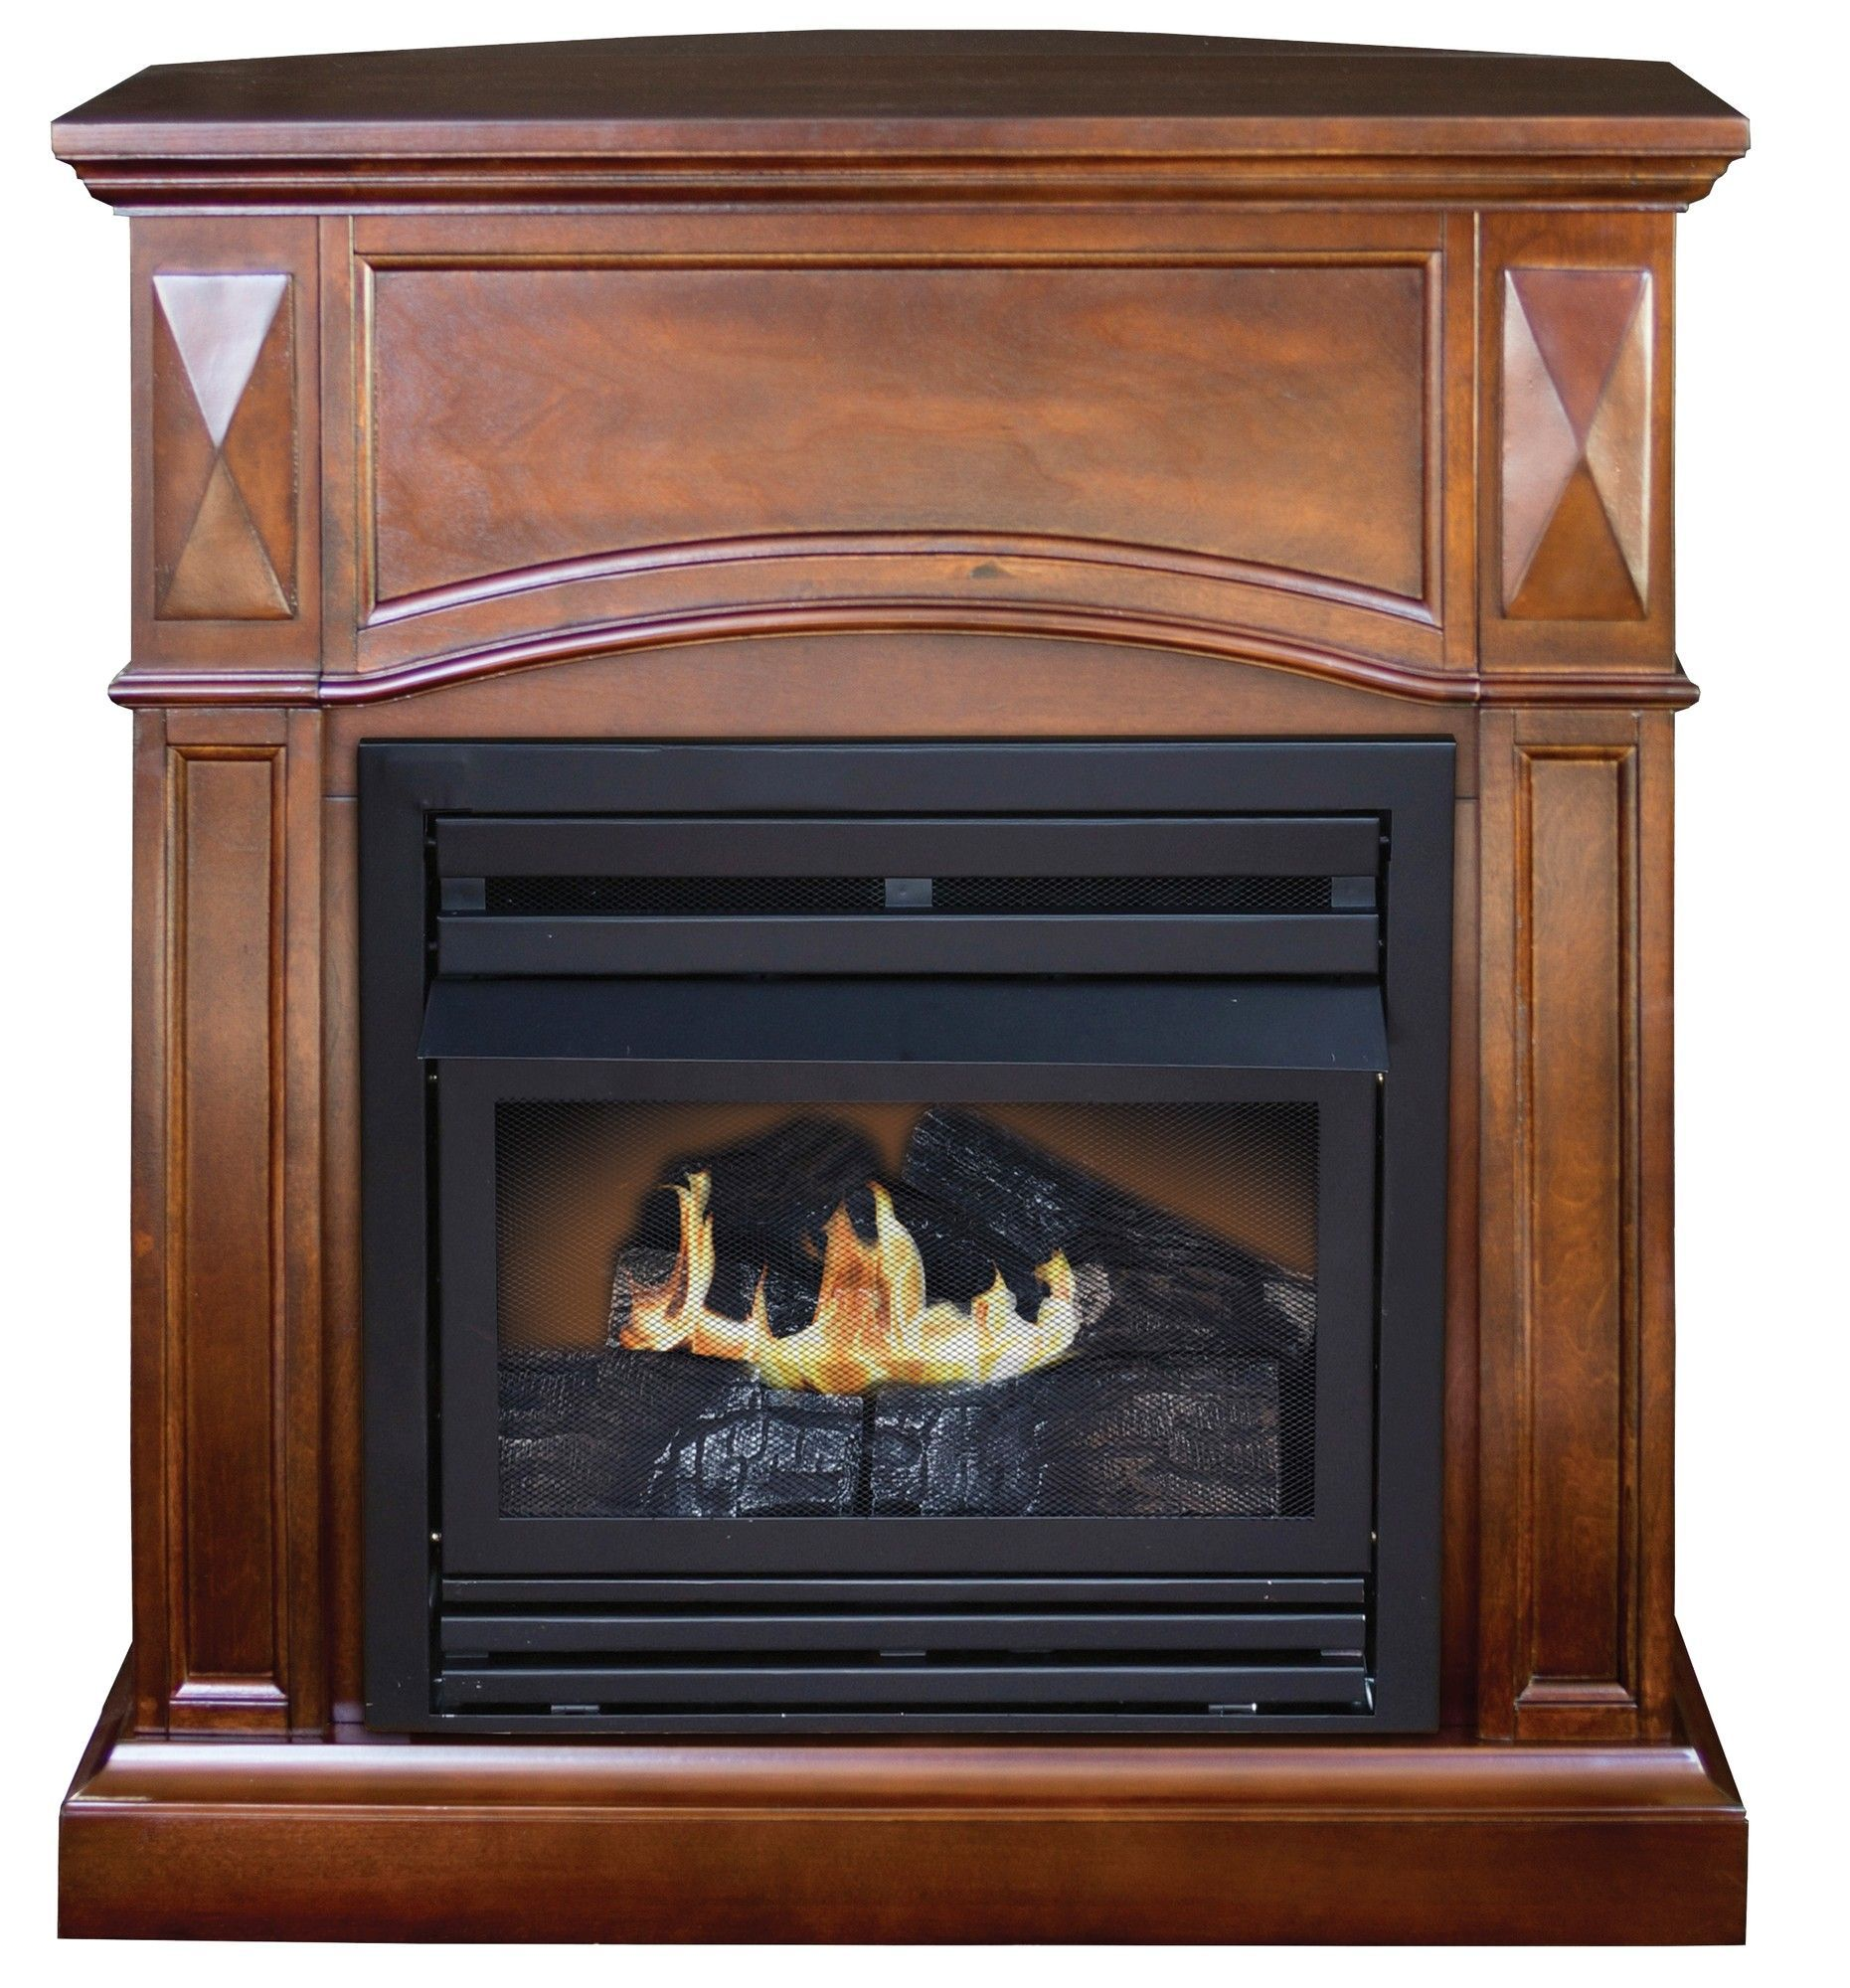 Belmont Compact Vent Free Natural Gas Propane Fireplace Propane Fireplace Gas Fireplace Fireplace